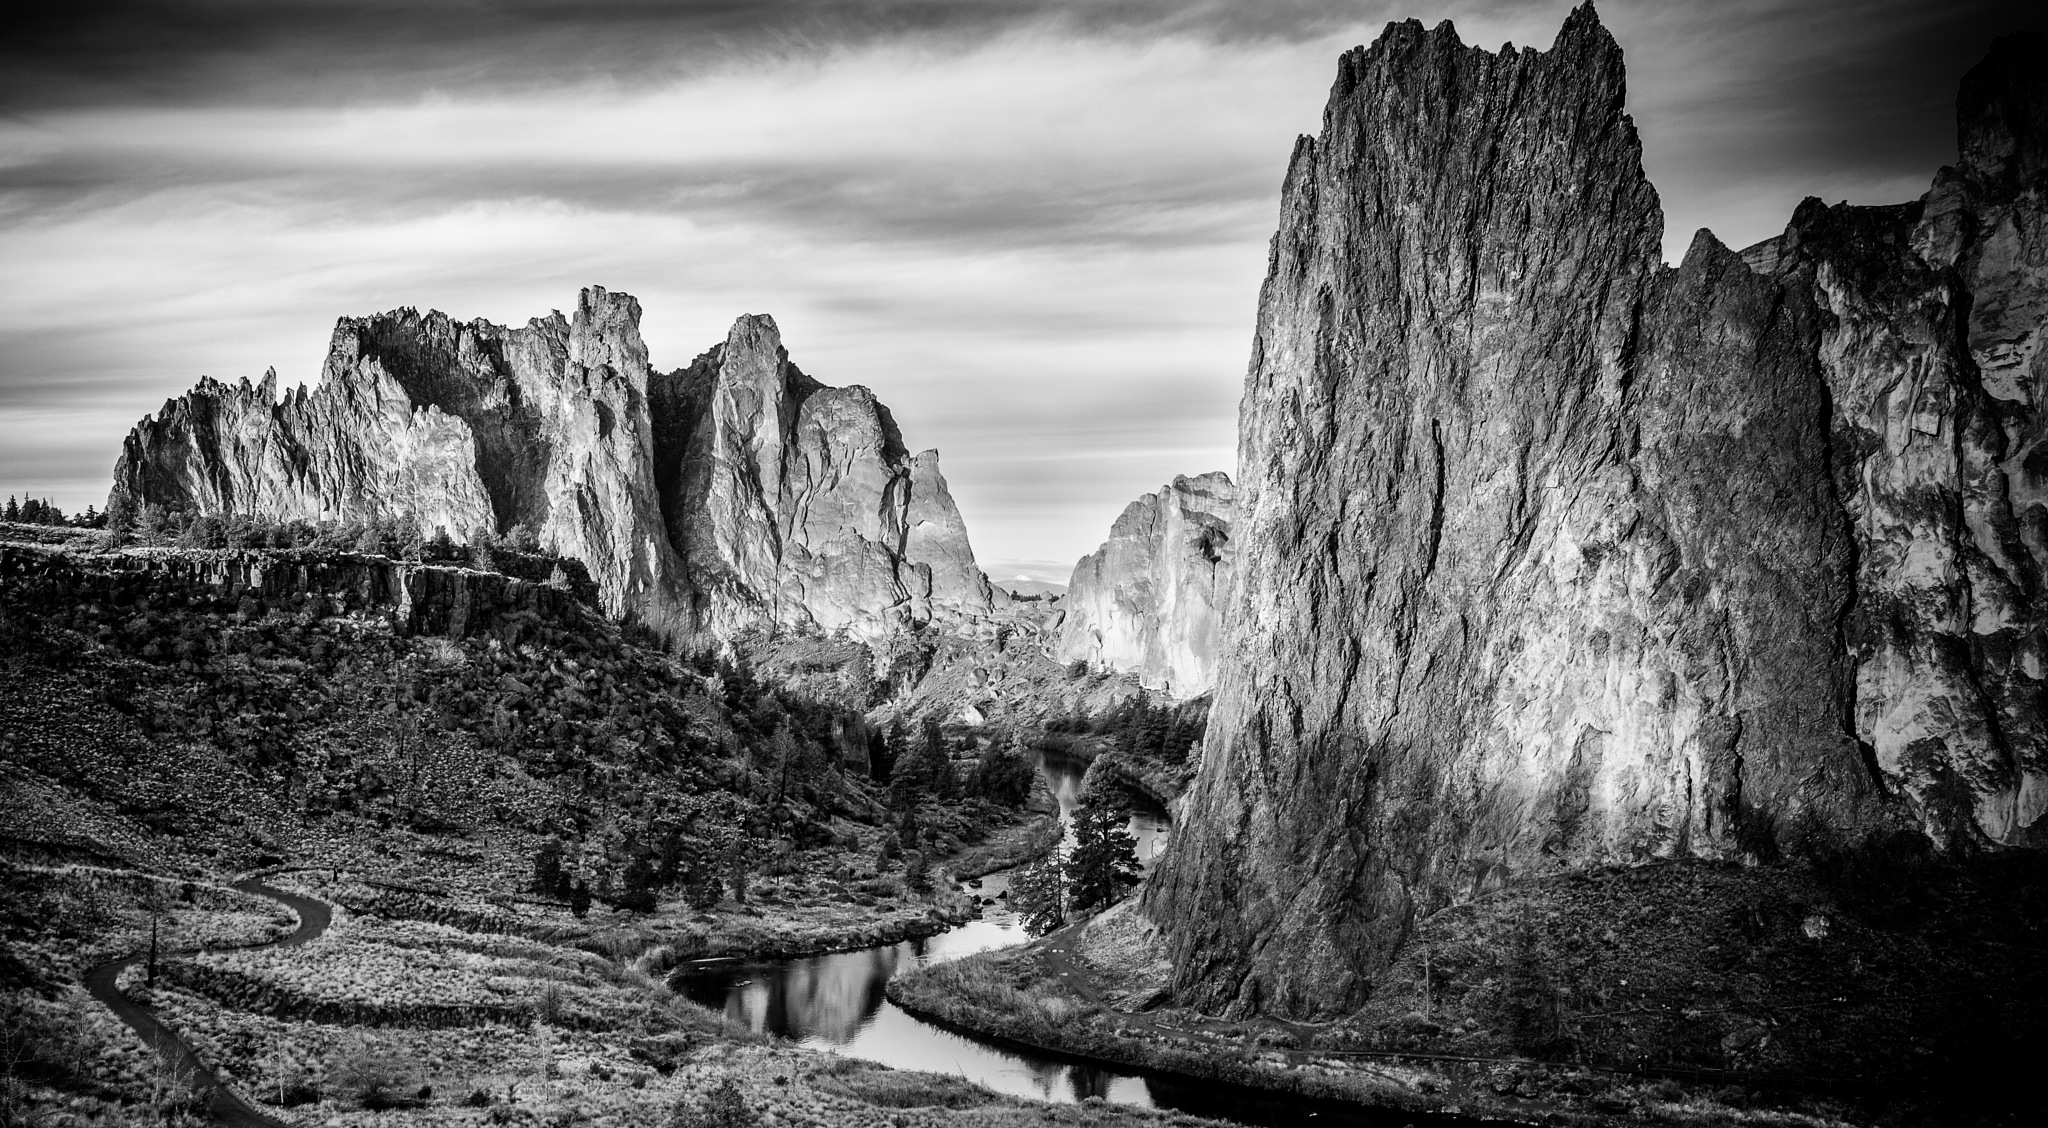 Smith Rock by Charles Thomas